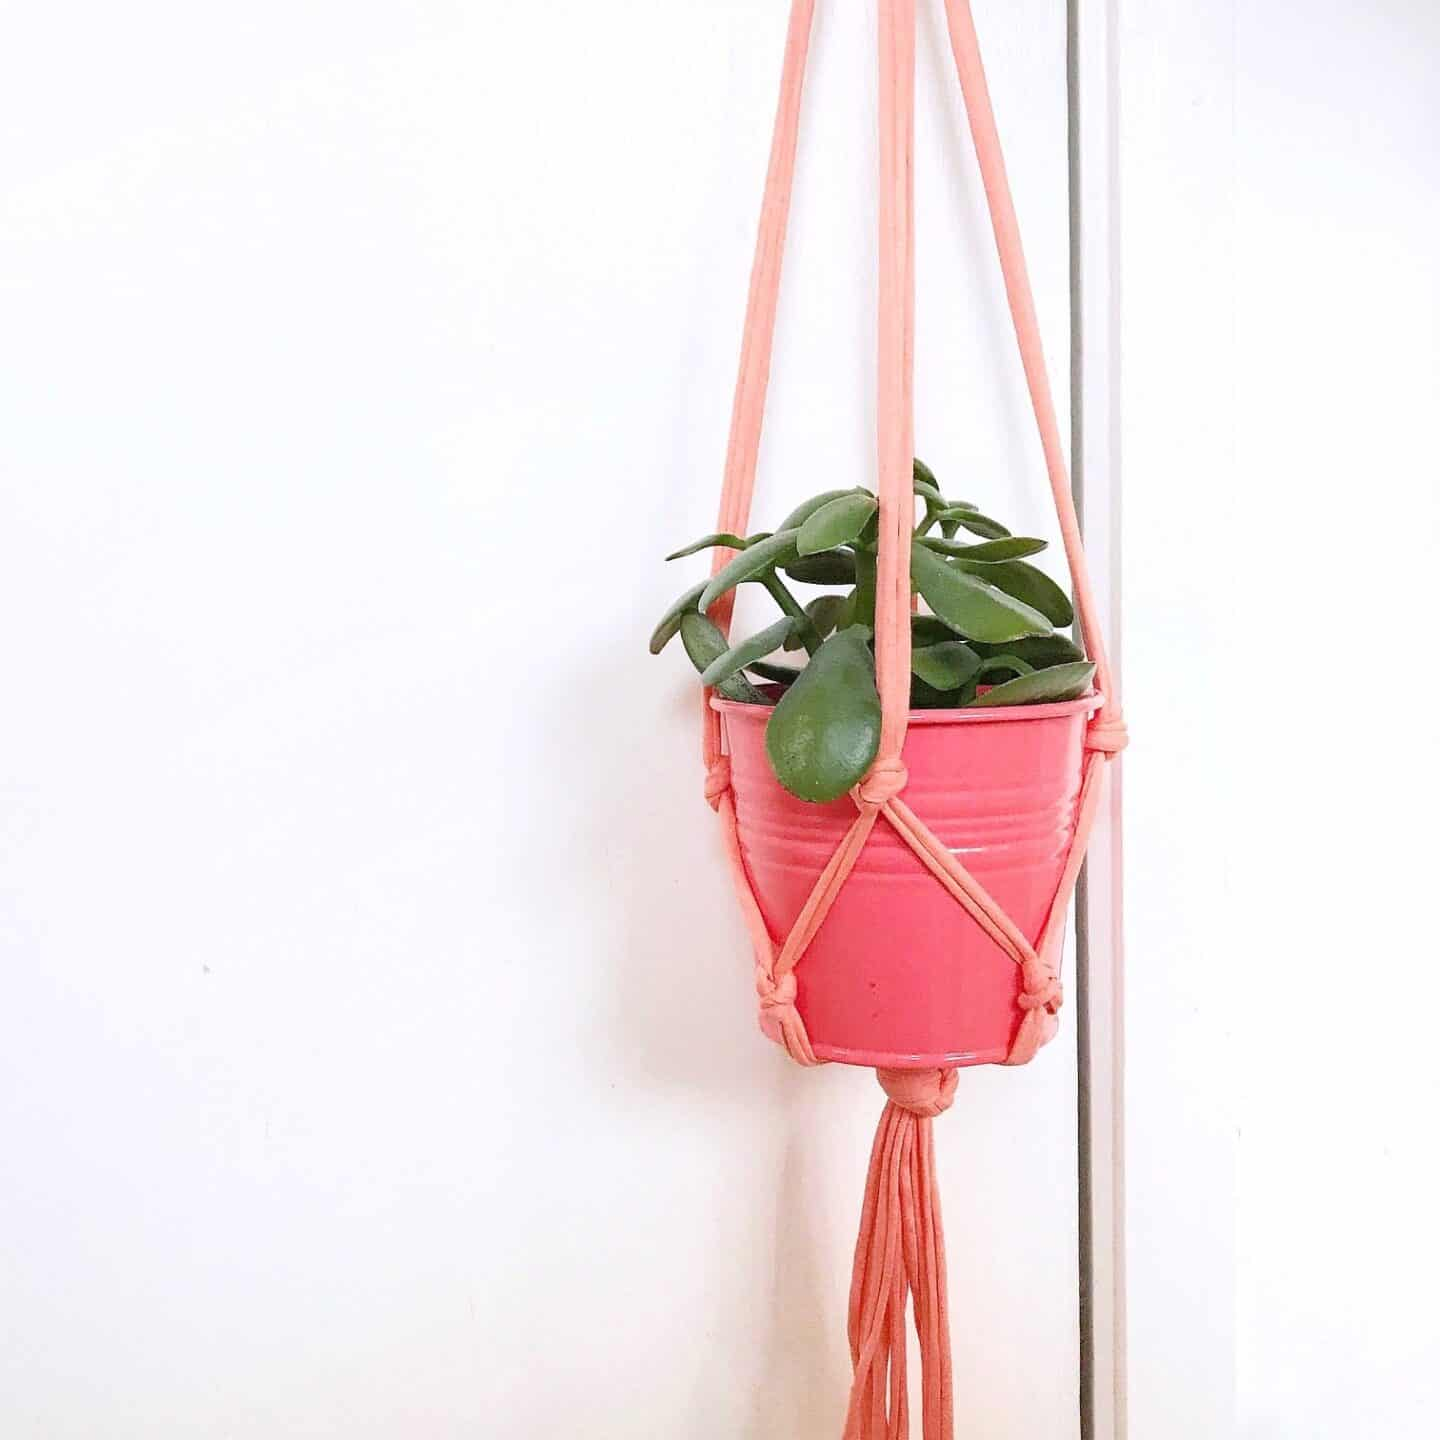 My Coral Pink Macrame Plant Hanger